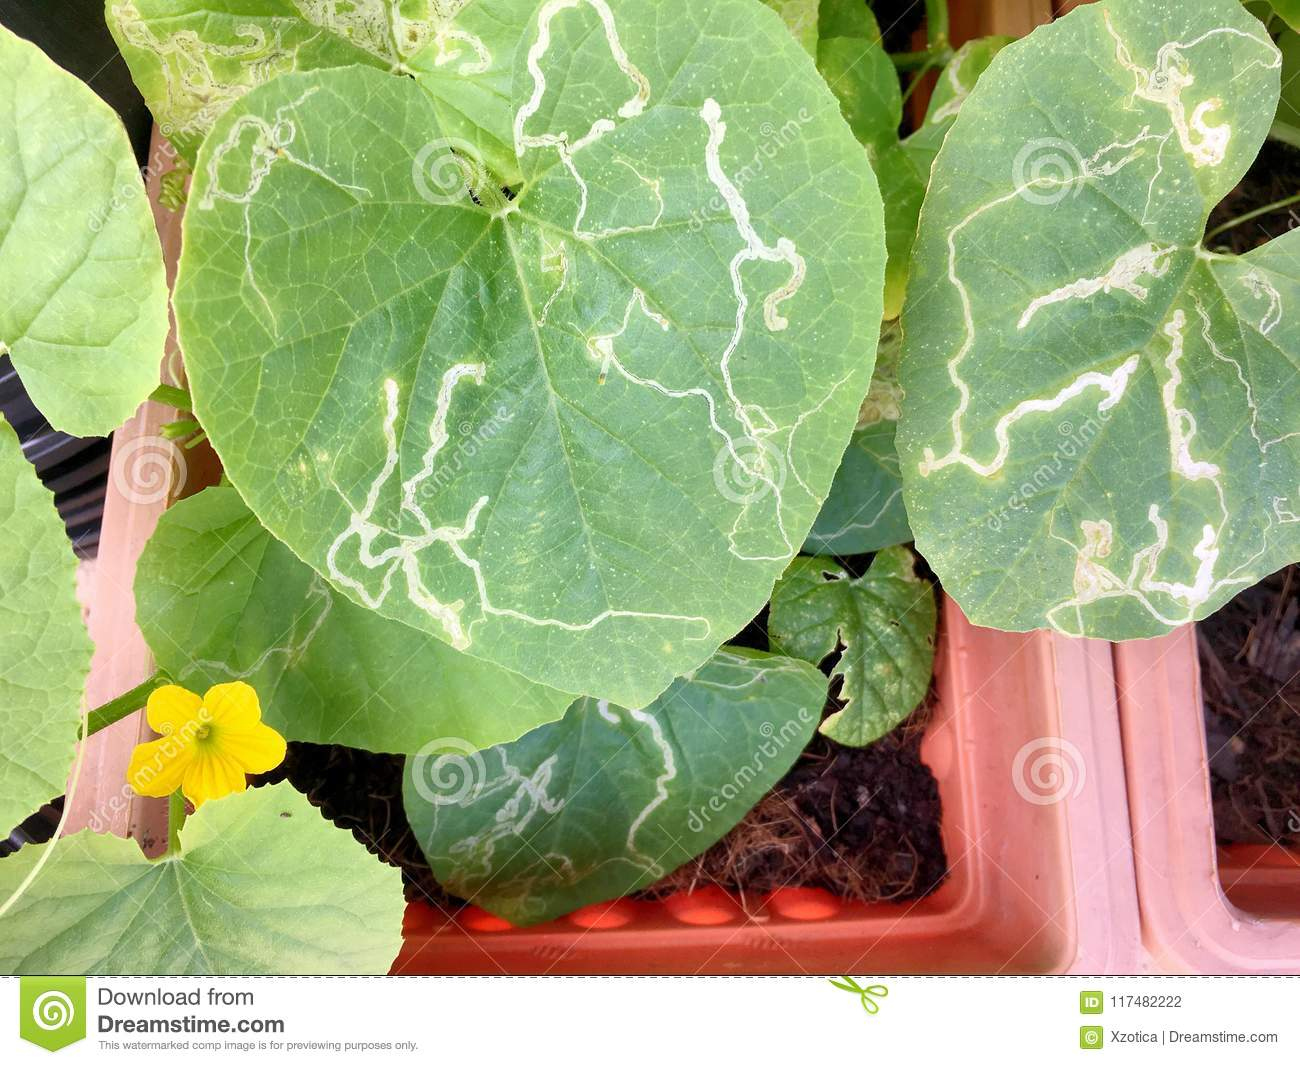 Watermelon Plant Leaves Pictures